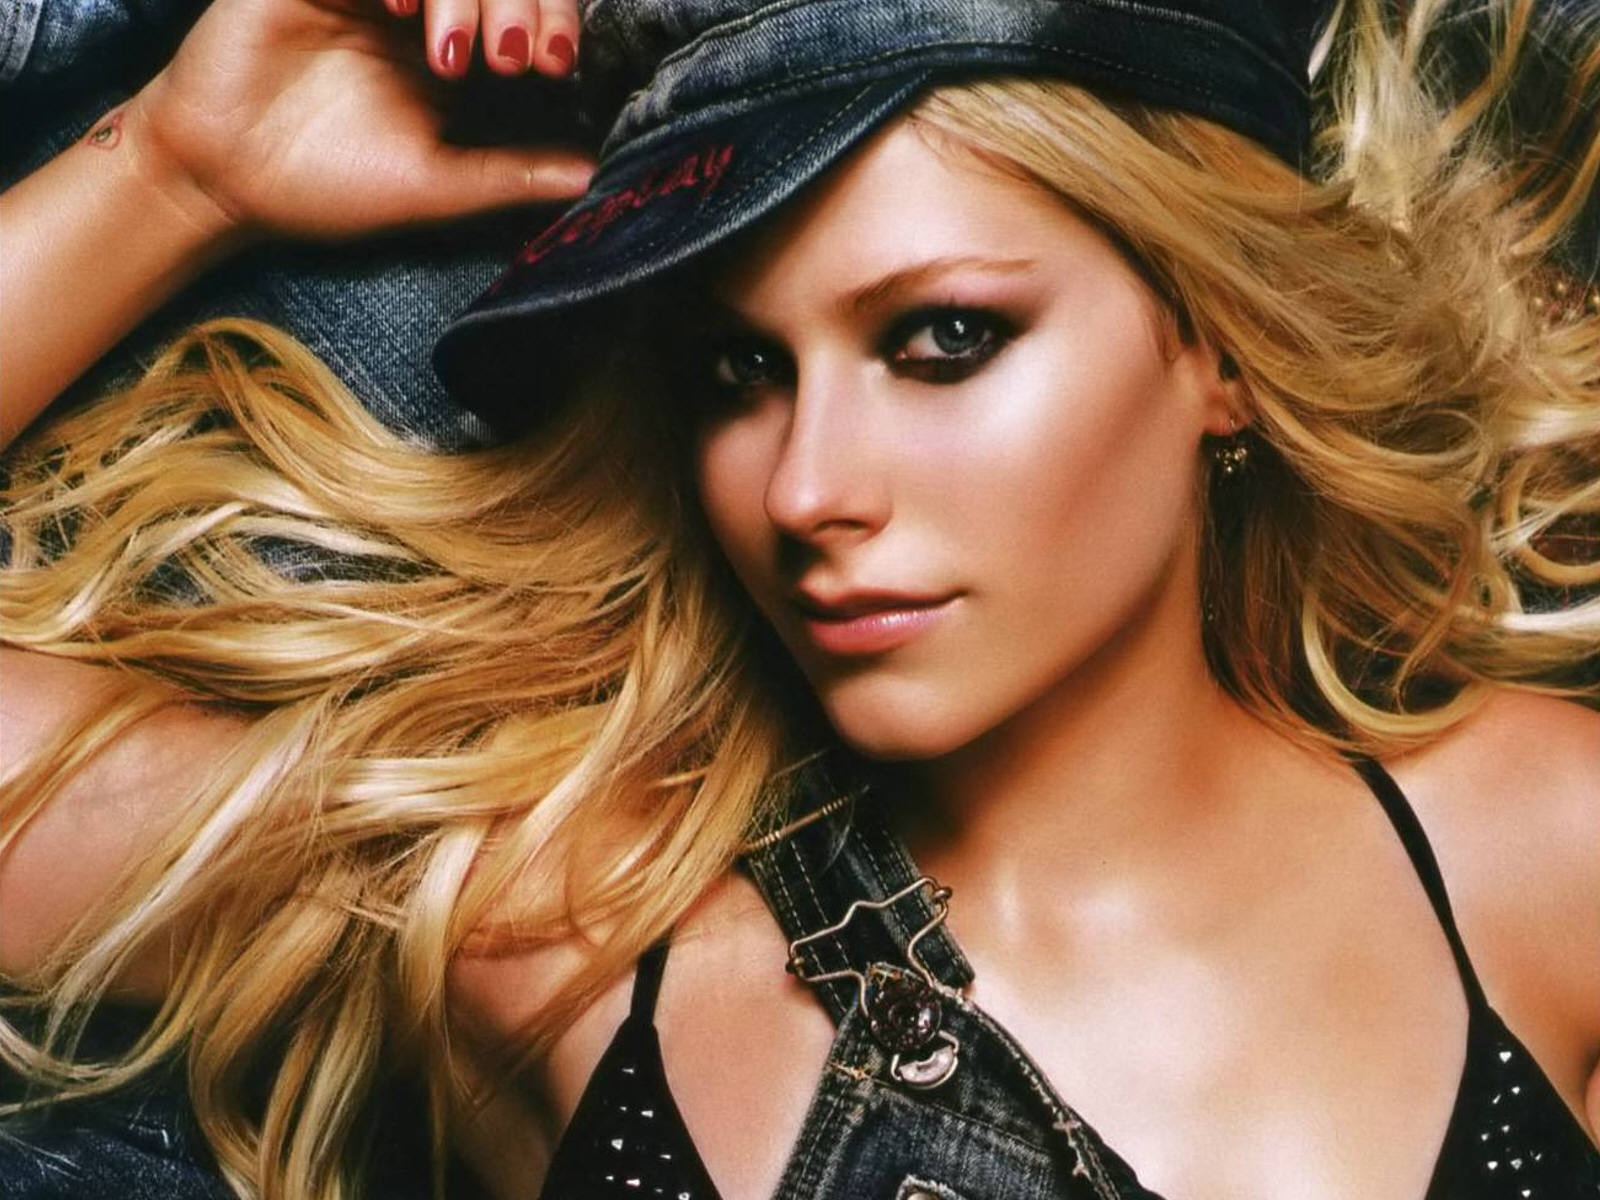 http://www.wallcoo.com/star/1600x1200_Avril_Lavigne_wallpapers/mxxx01/avril-lavigne-199.jpg